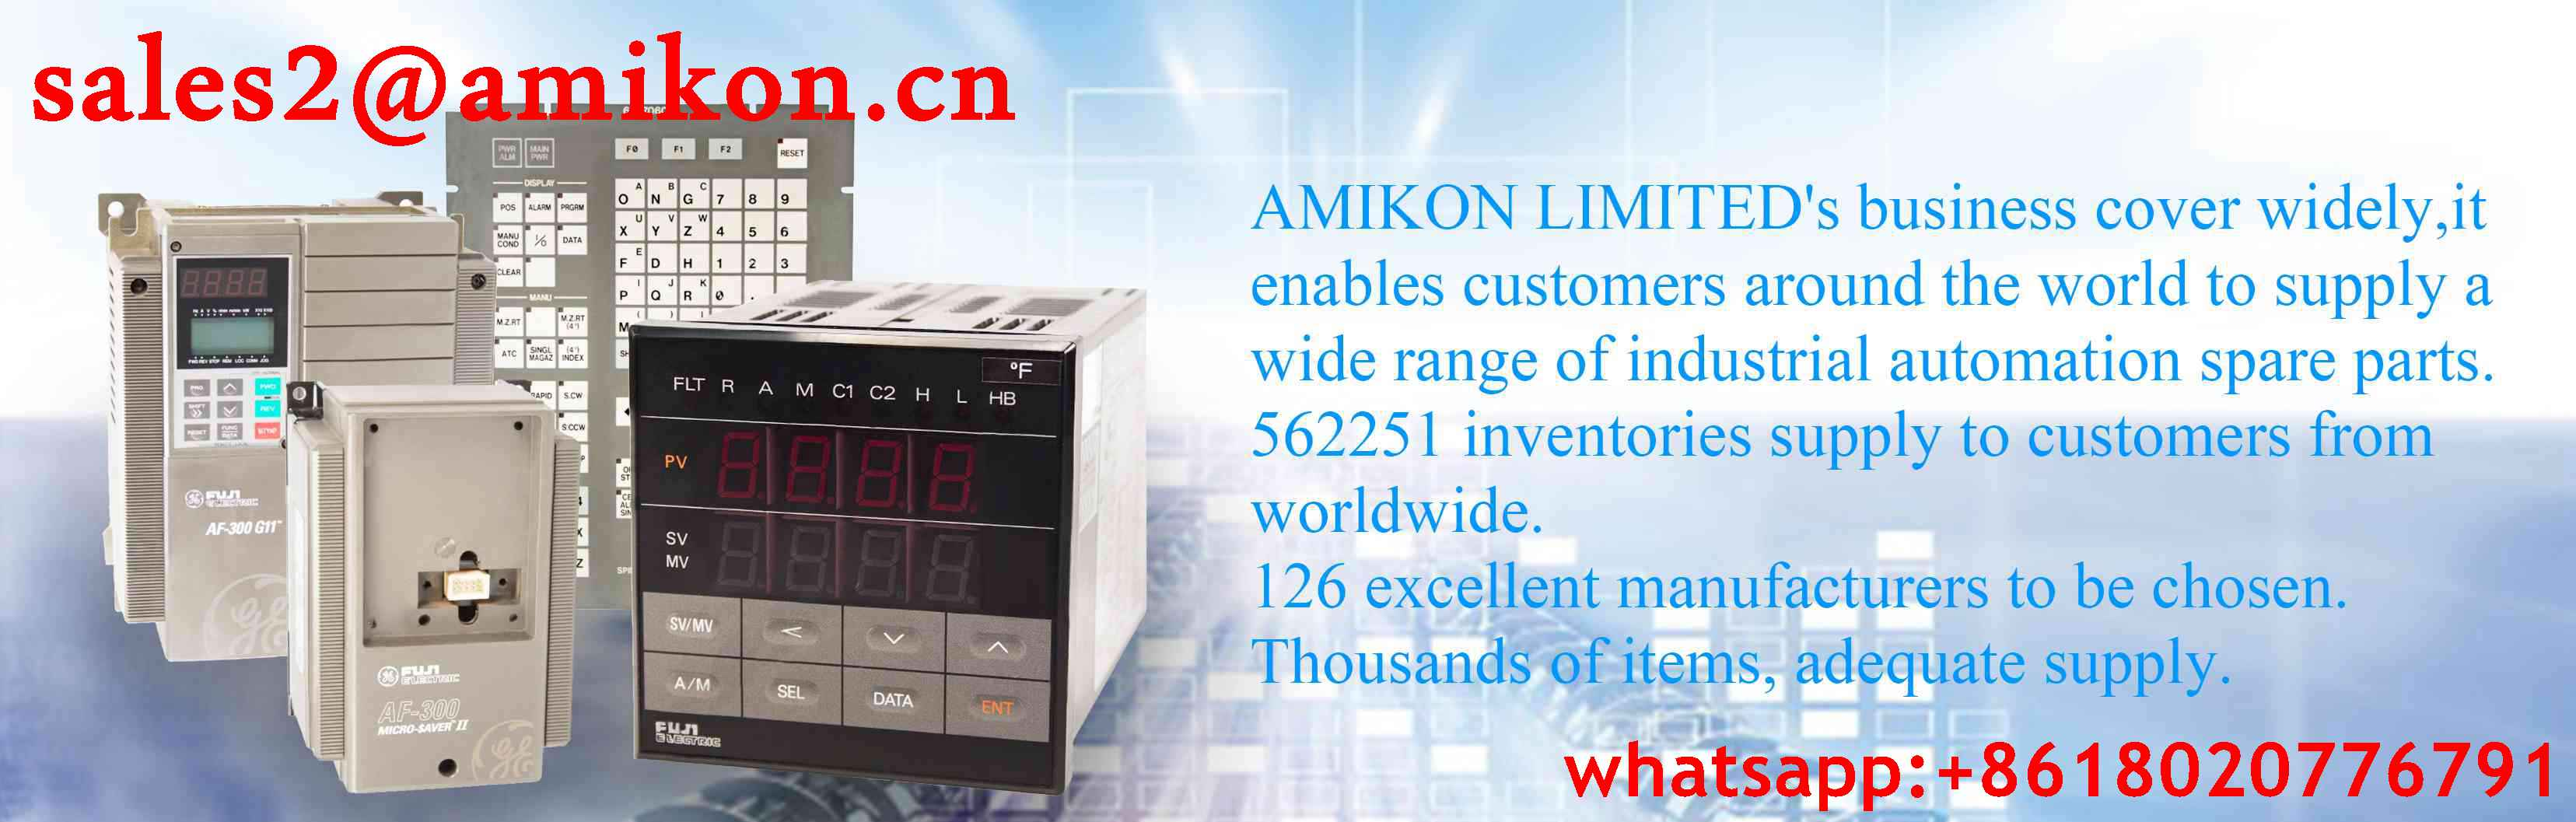 IC697CPU781 GE General Electric sales2@amikon.cn PLC DCS Industry Control System Module